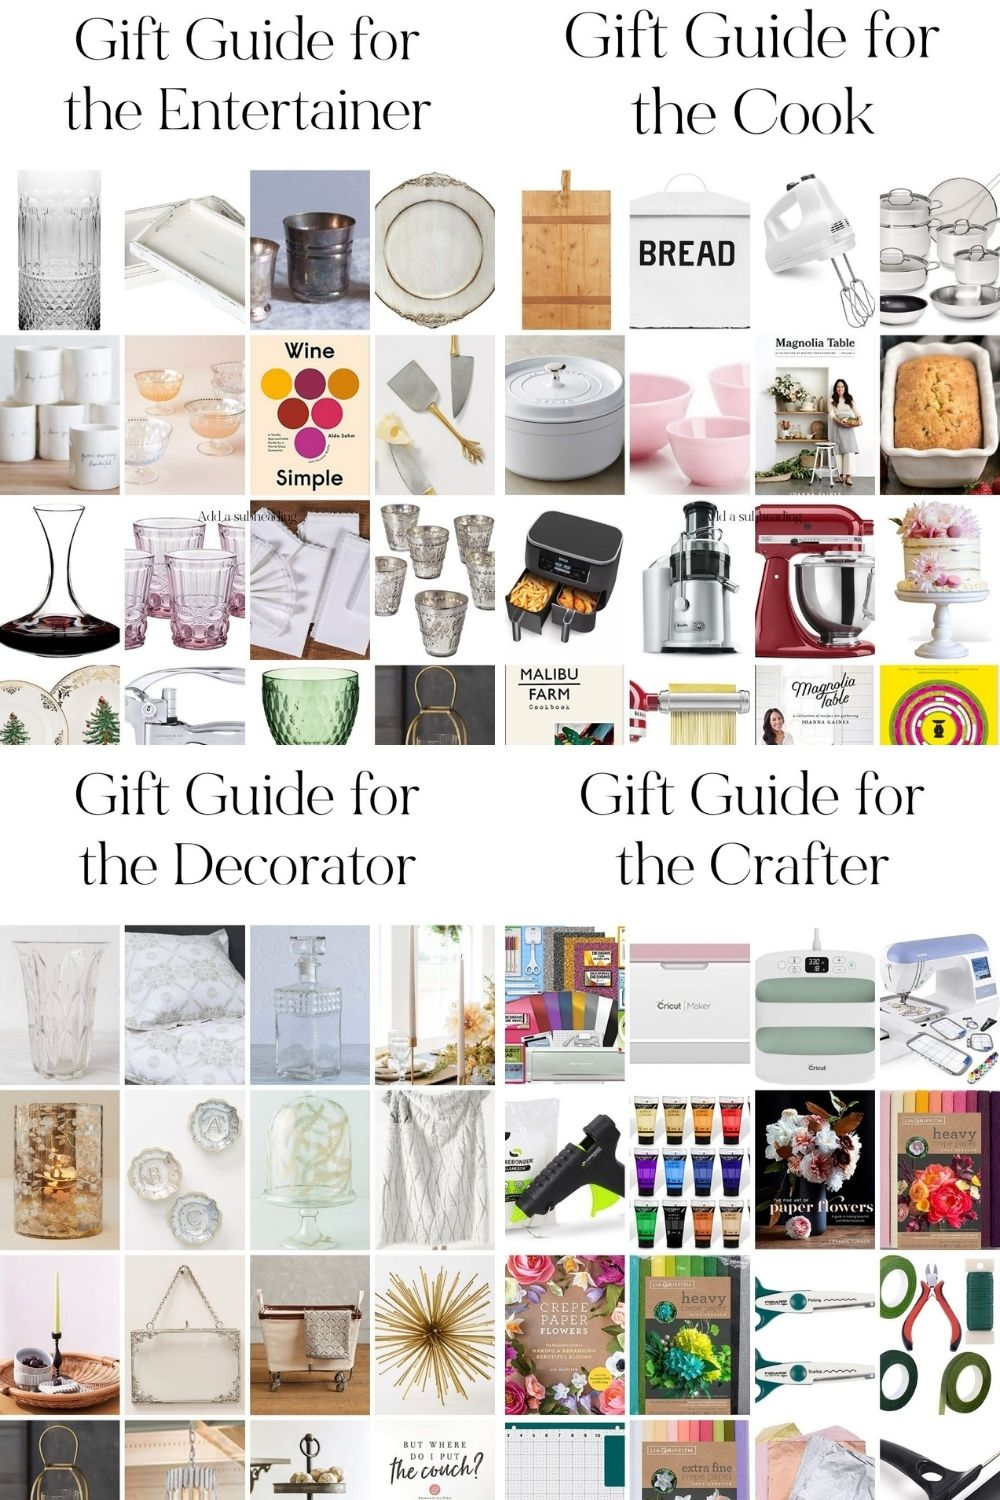 I finally started my Christmas shopping, and also came up with my own Christmas wish list. I ended up creating four holiday Gift Guides!